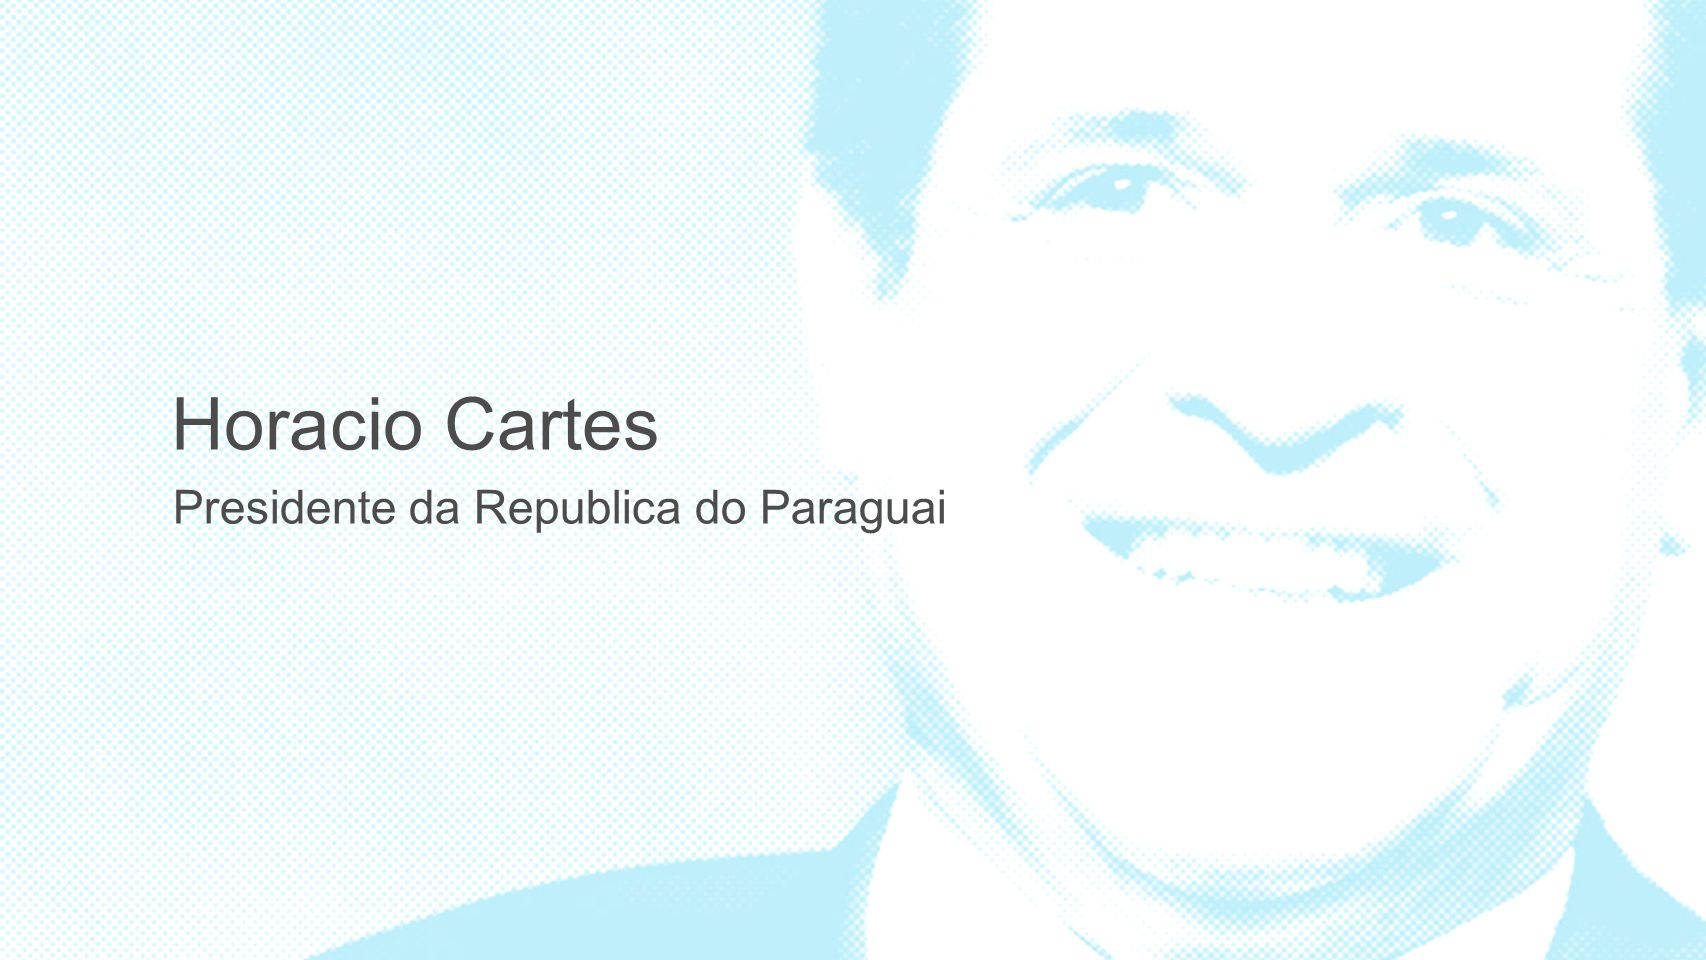 Horacio Cartes Presidente da Republica do Paraguai 3 3